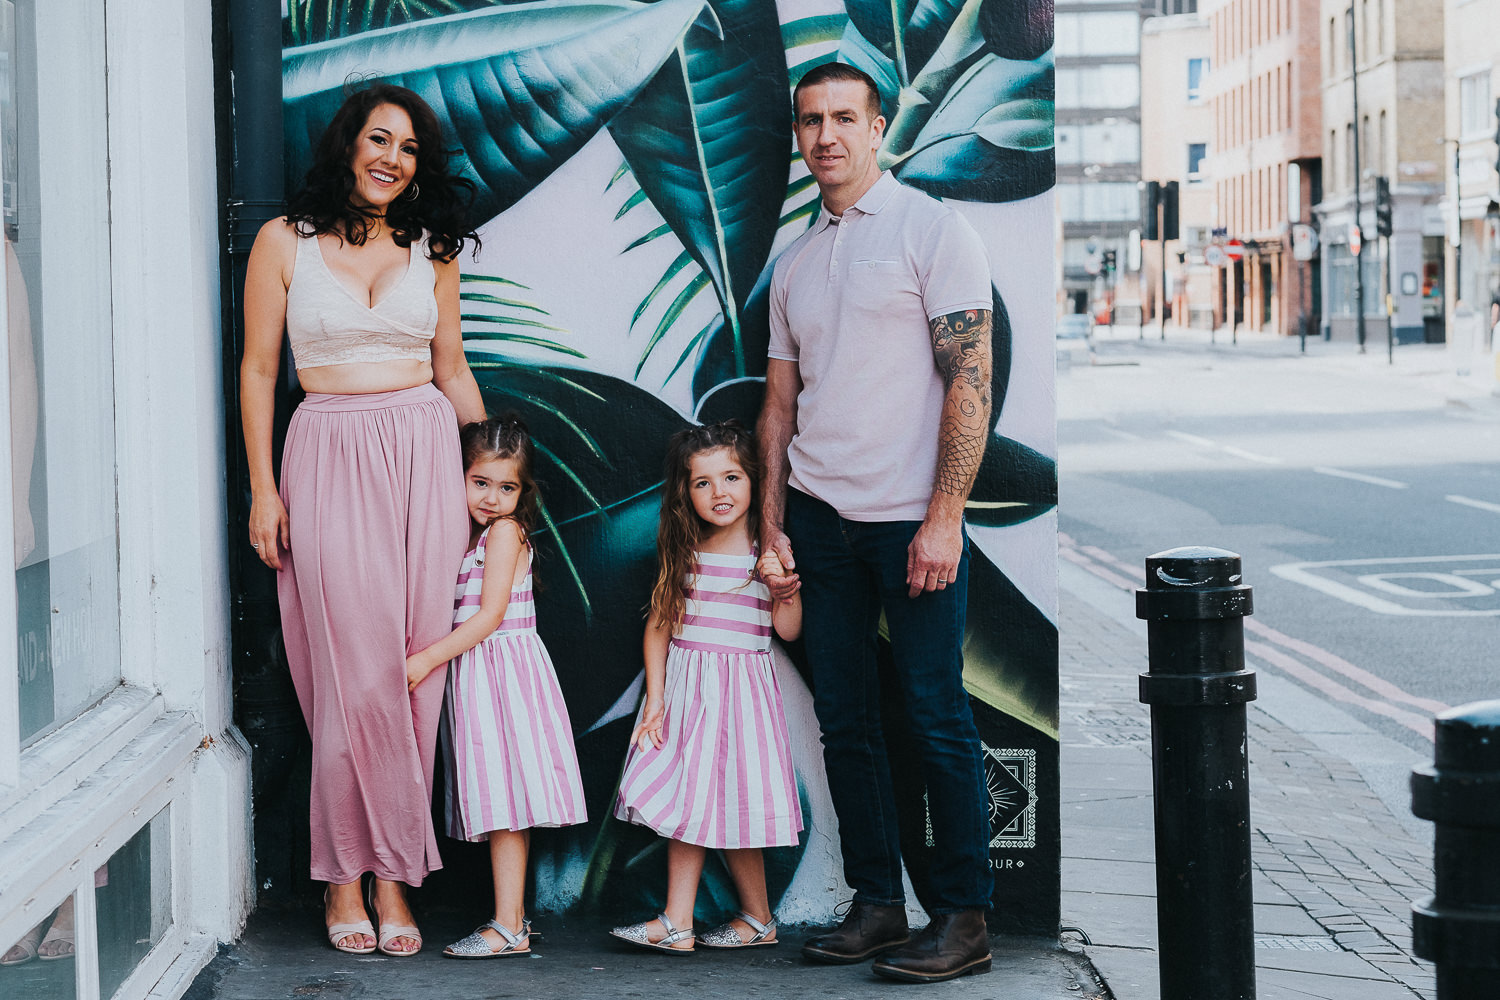 family photo shoot in shoreditch street art twin girls and parents by palm leaf wall